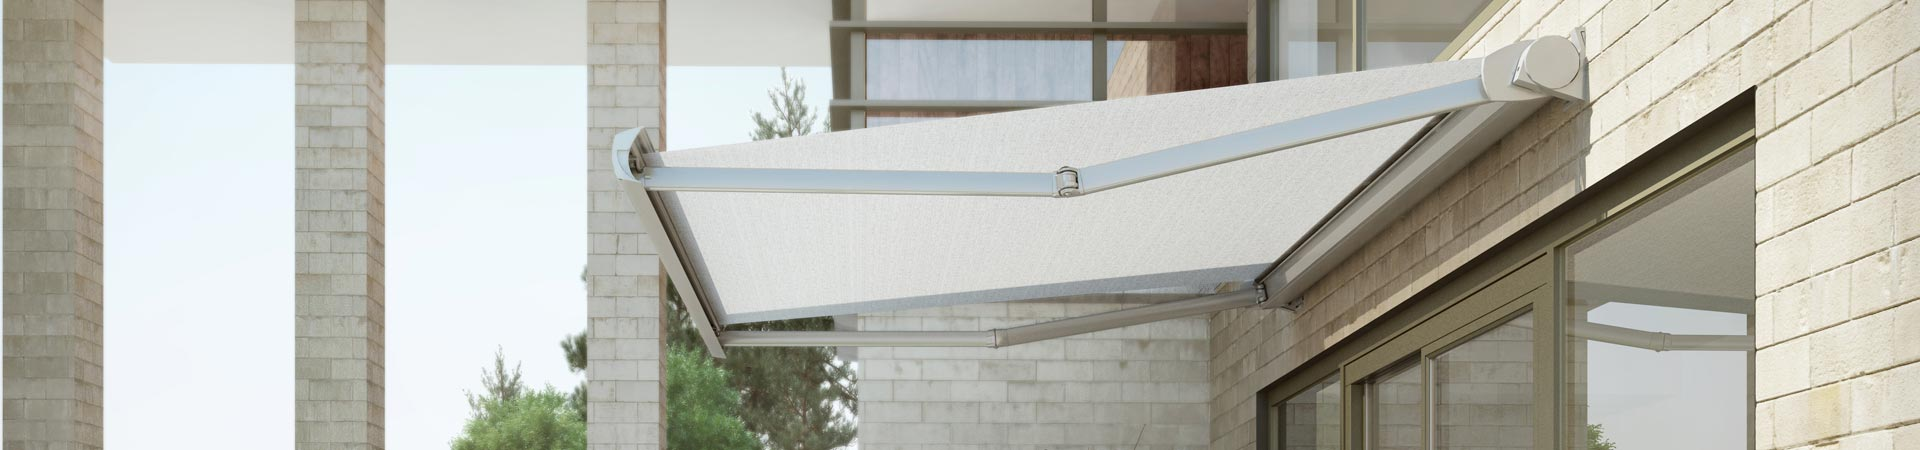 Retractable Awnings Slider